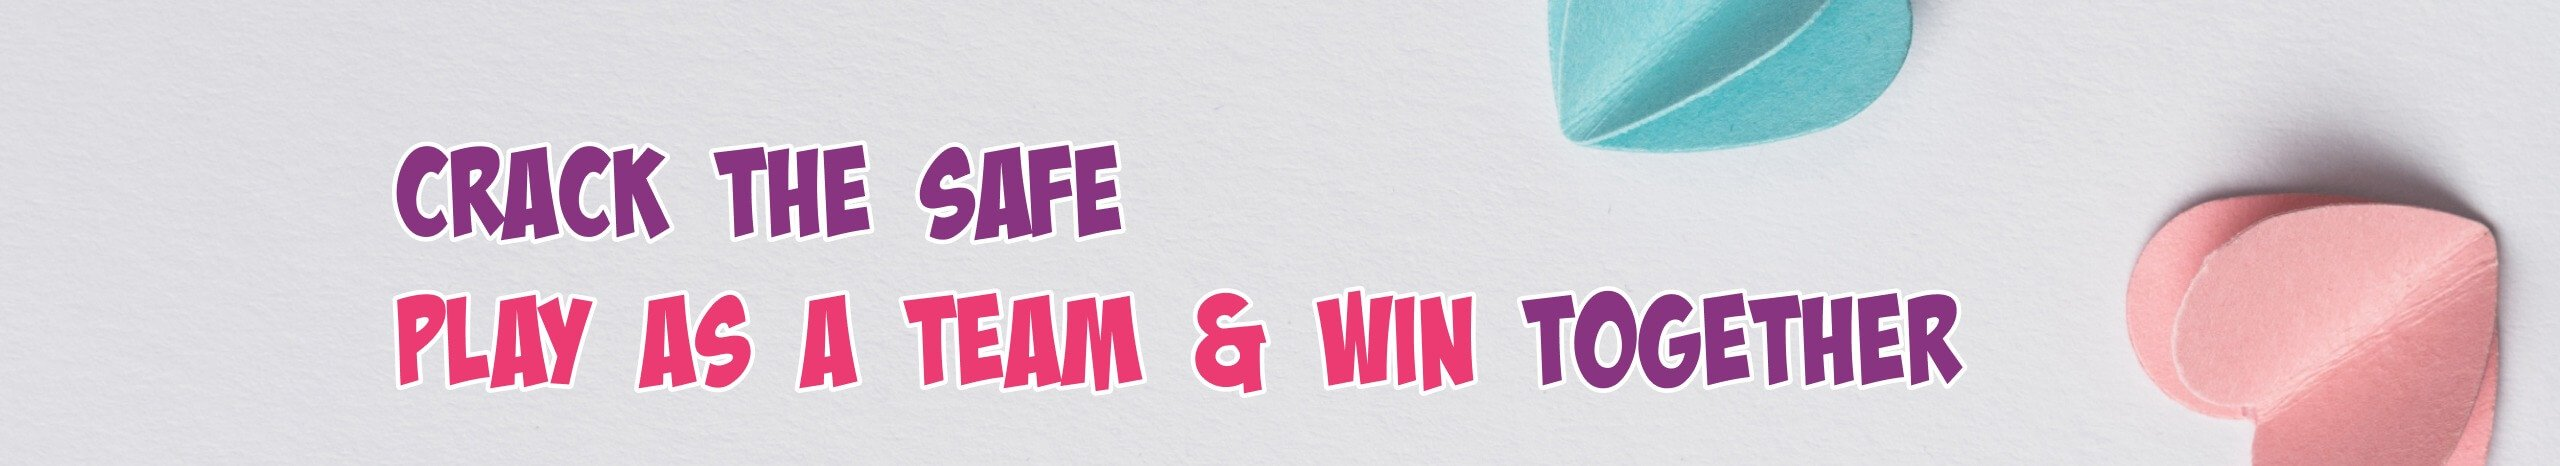 Crack the safe as a team! In there, you will find a cash reward of £1,000 as well as 1,000 Free Spins, one Amazon Echo, one Apple Watch and a Bean To Coffee Machine.